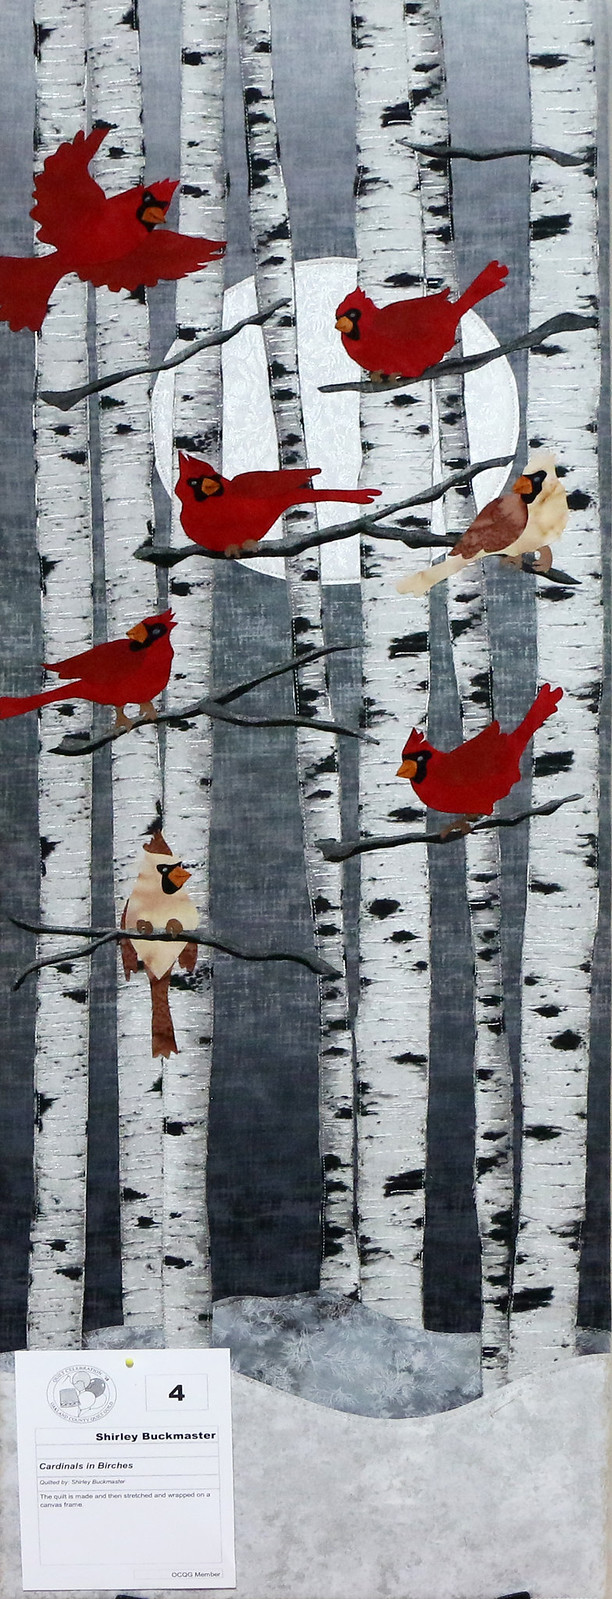 4: Cardinals in Birches - Shirley Buckmaster